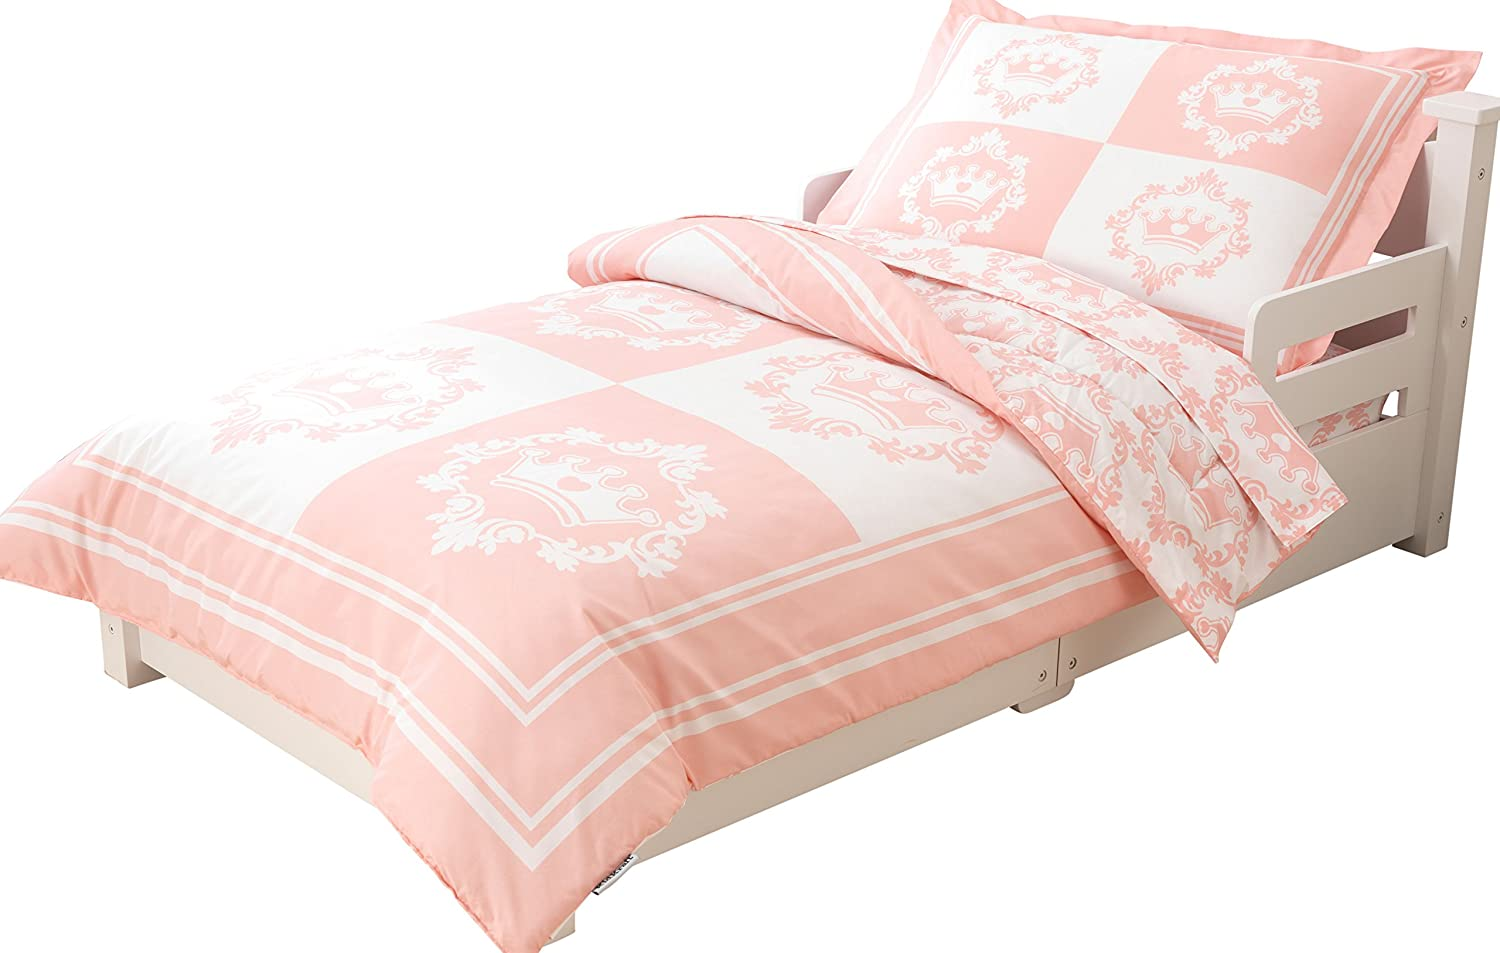 KidKraft Toddler Princess Bedding Beads